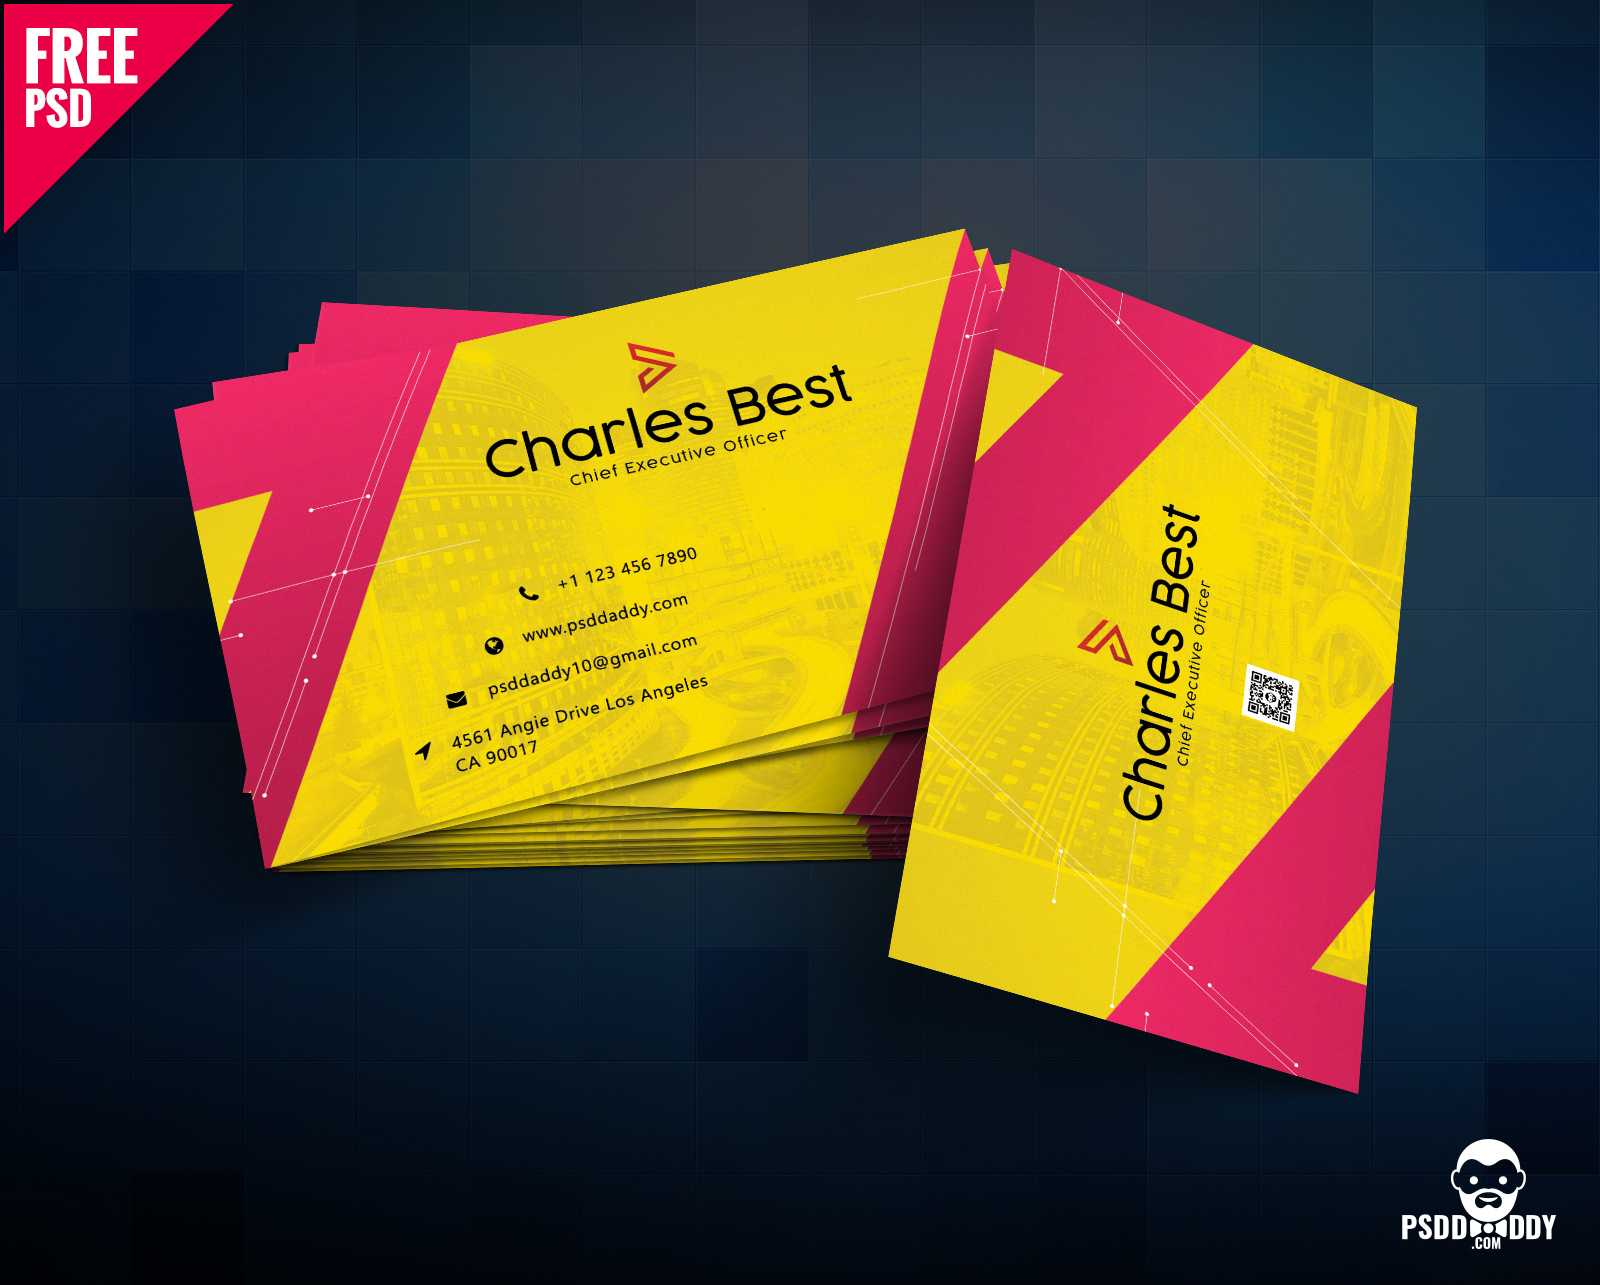 Download] Creative Business Card Free Psd | Psddaddy Within Visiting Card Templates For Photoshop